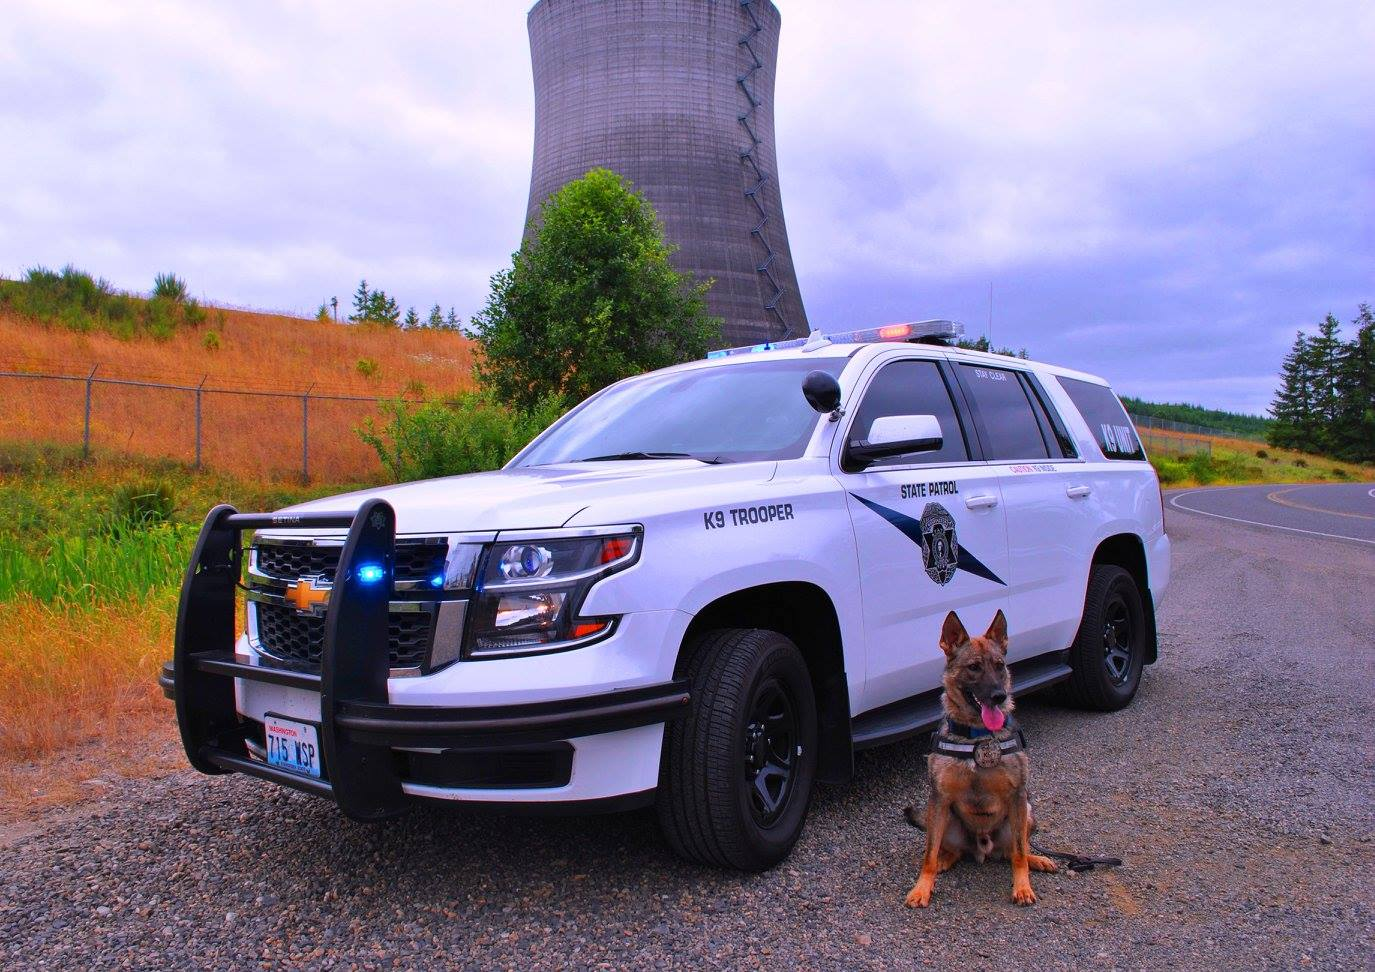 Washington State Patrol. (American Association of State Troopers|Facebook)